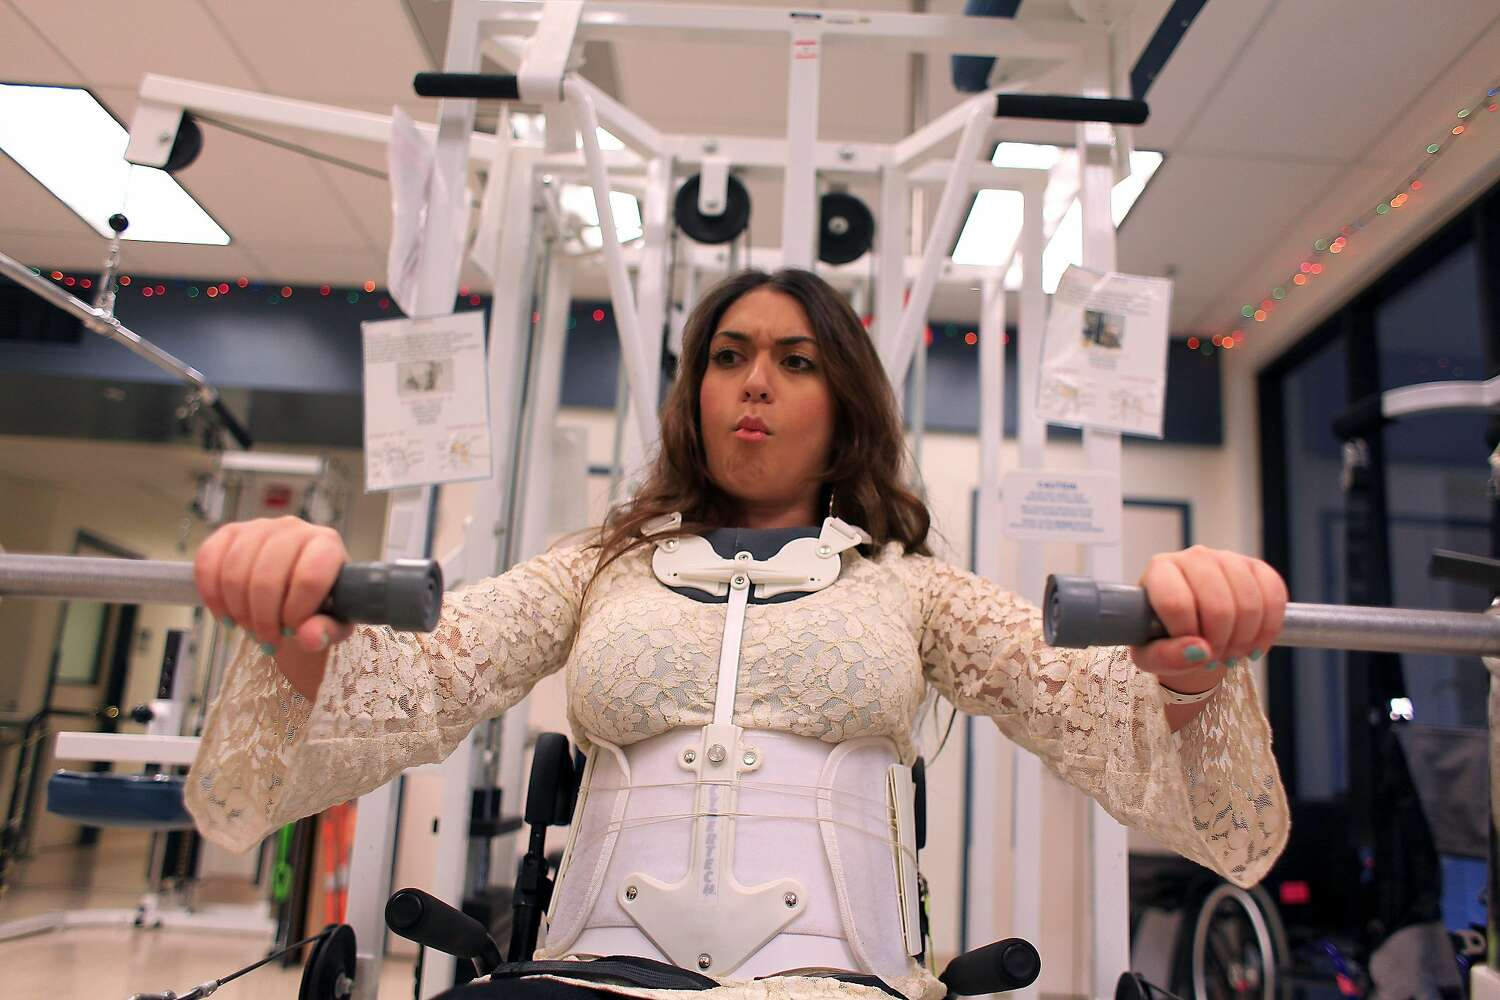 Katie Sharify does physical therapy in 2011.